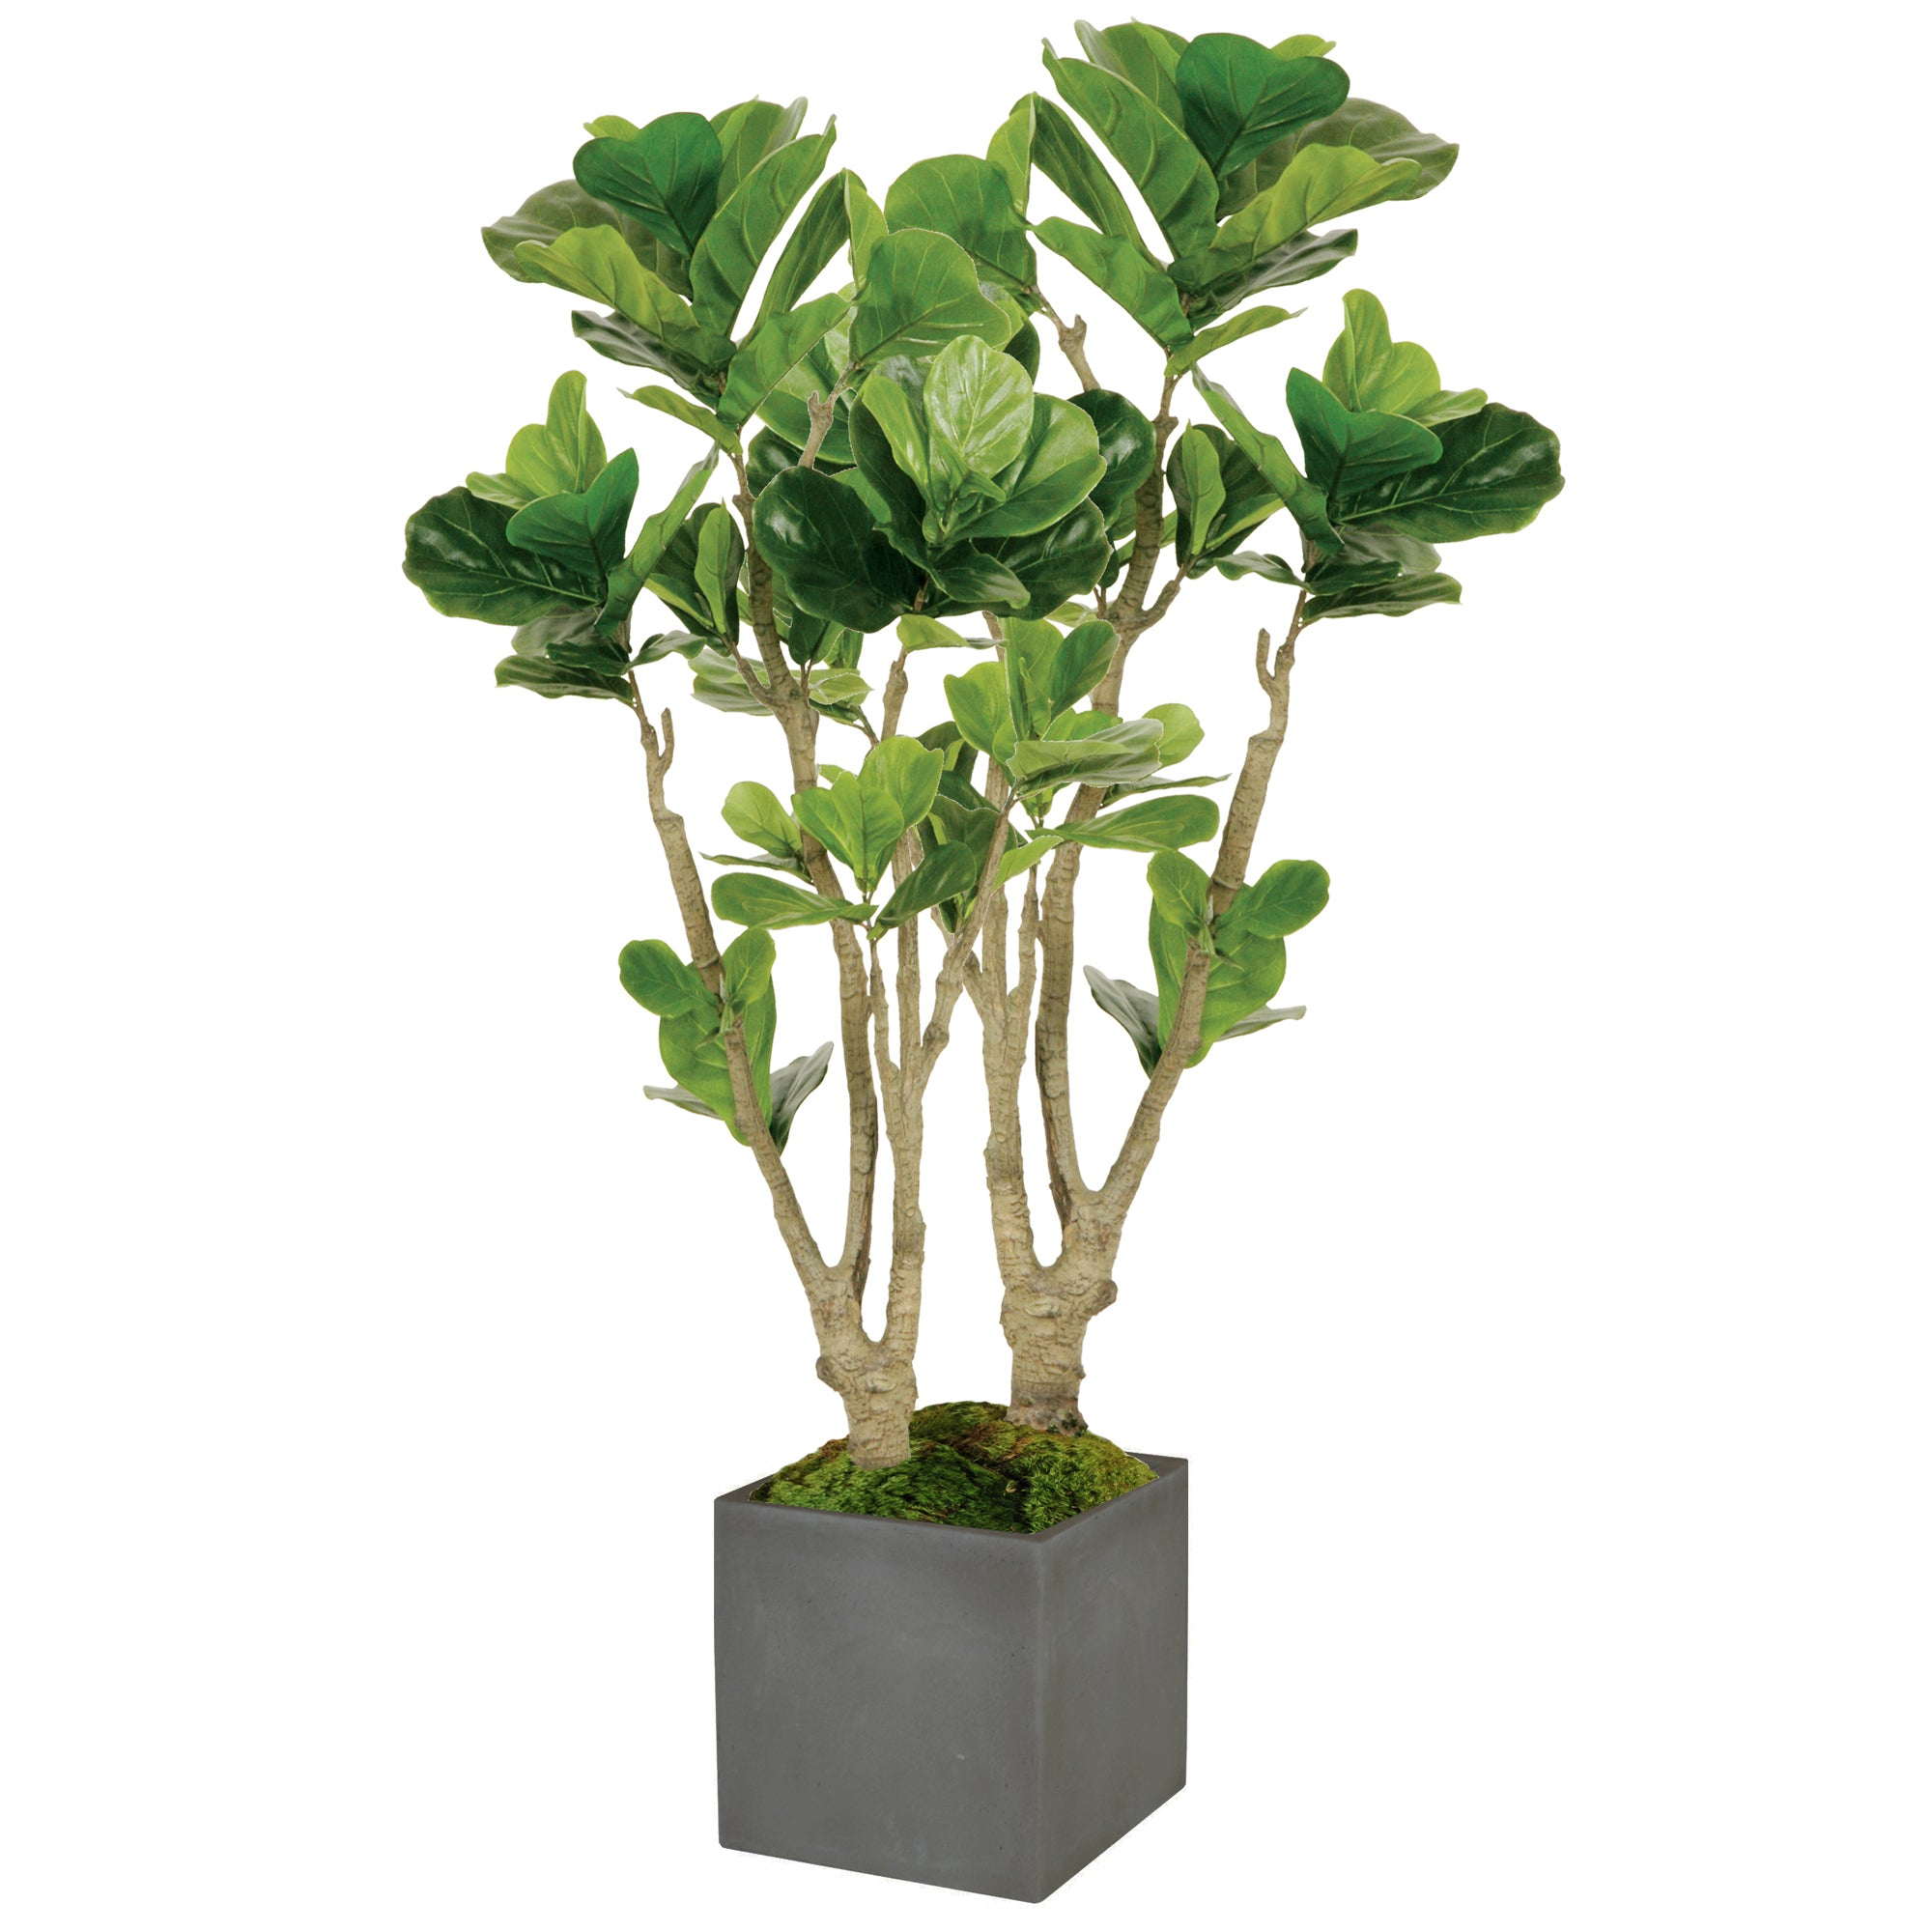 FIDDLE LEAF FIG TREE IN SQUARE PLANTER 4.5'